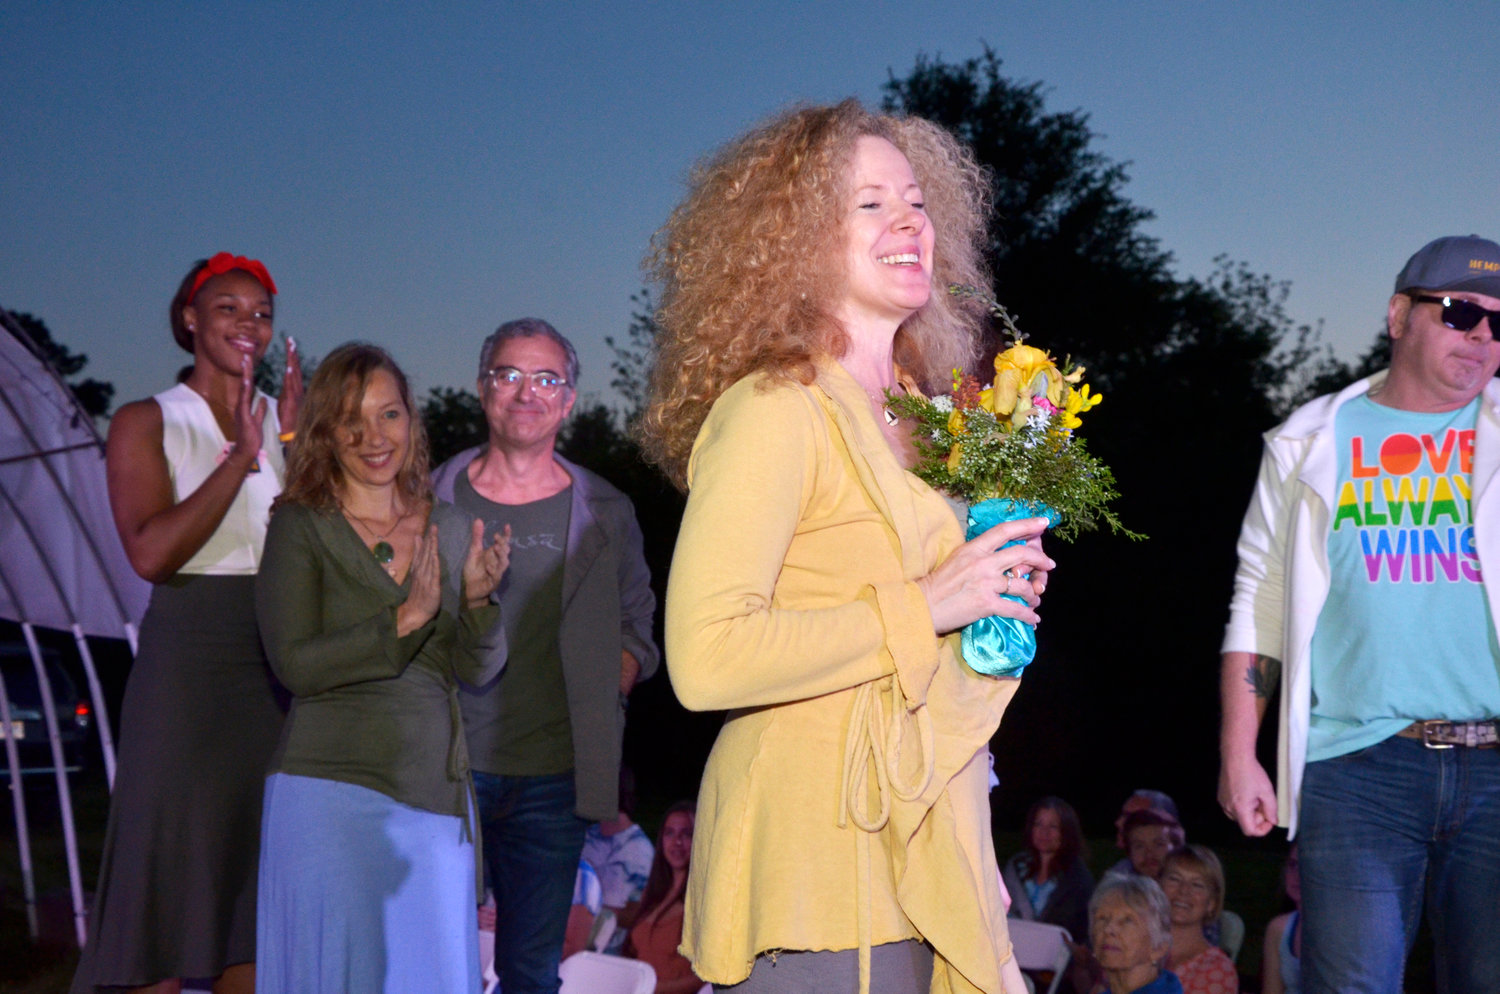 After showing her collection at the East Coast Runway event in Pittsboro Saturday, one of the four designers gets flowers and applause for her work.